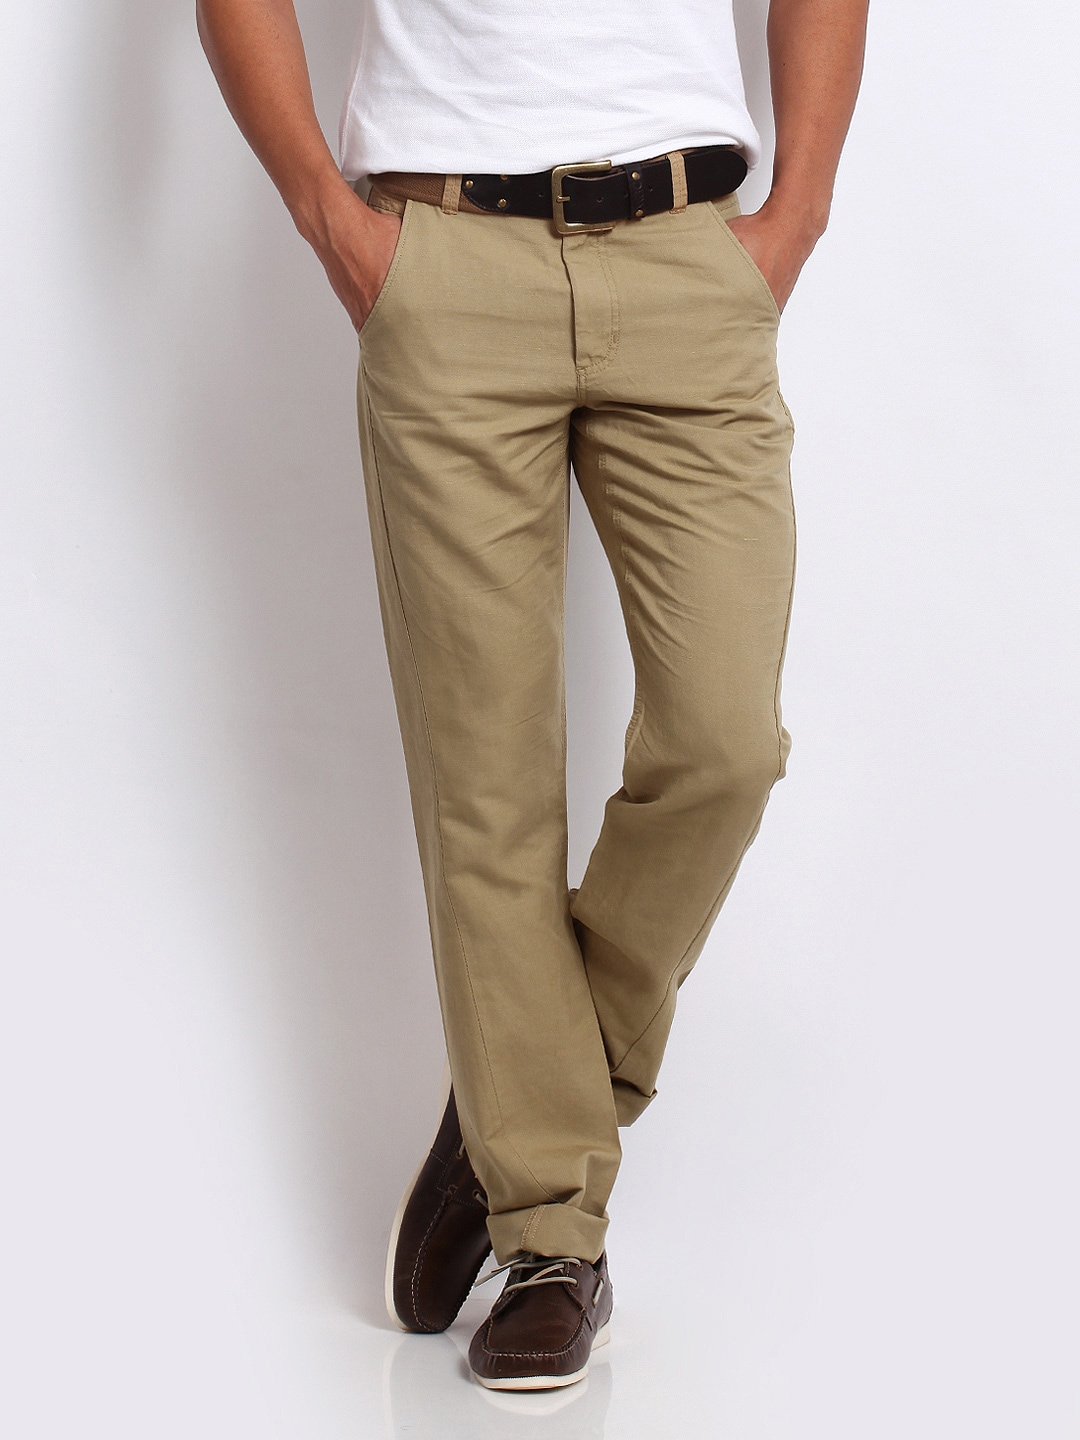 Mens Linen Khaki Pants